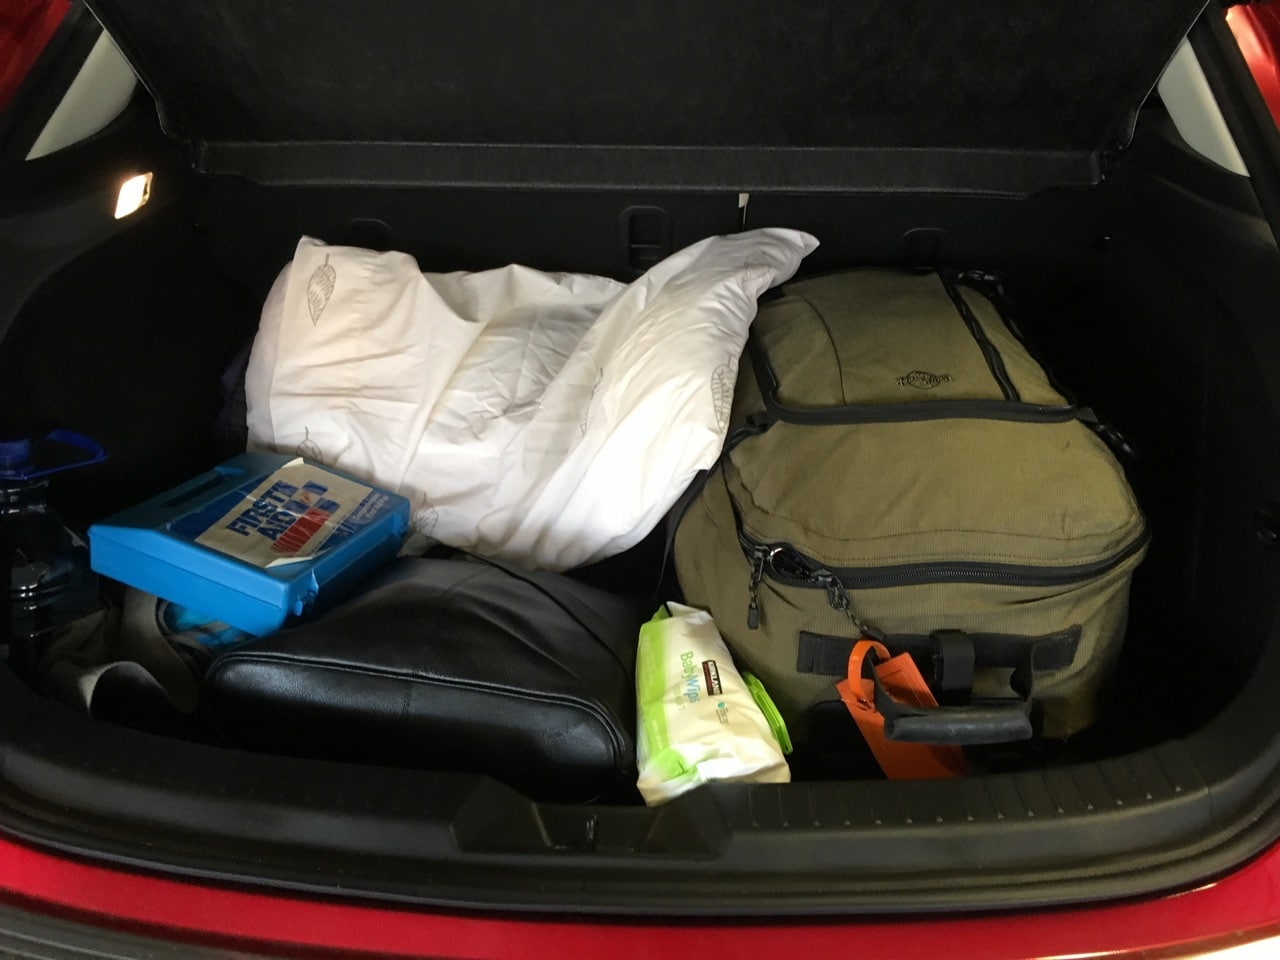 There was still room in the back of the car after I packed my giant suitcase, pillow, water, first aid kit, laptop bag, sleeping bag, etc.